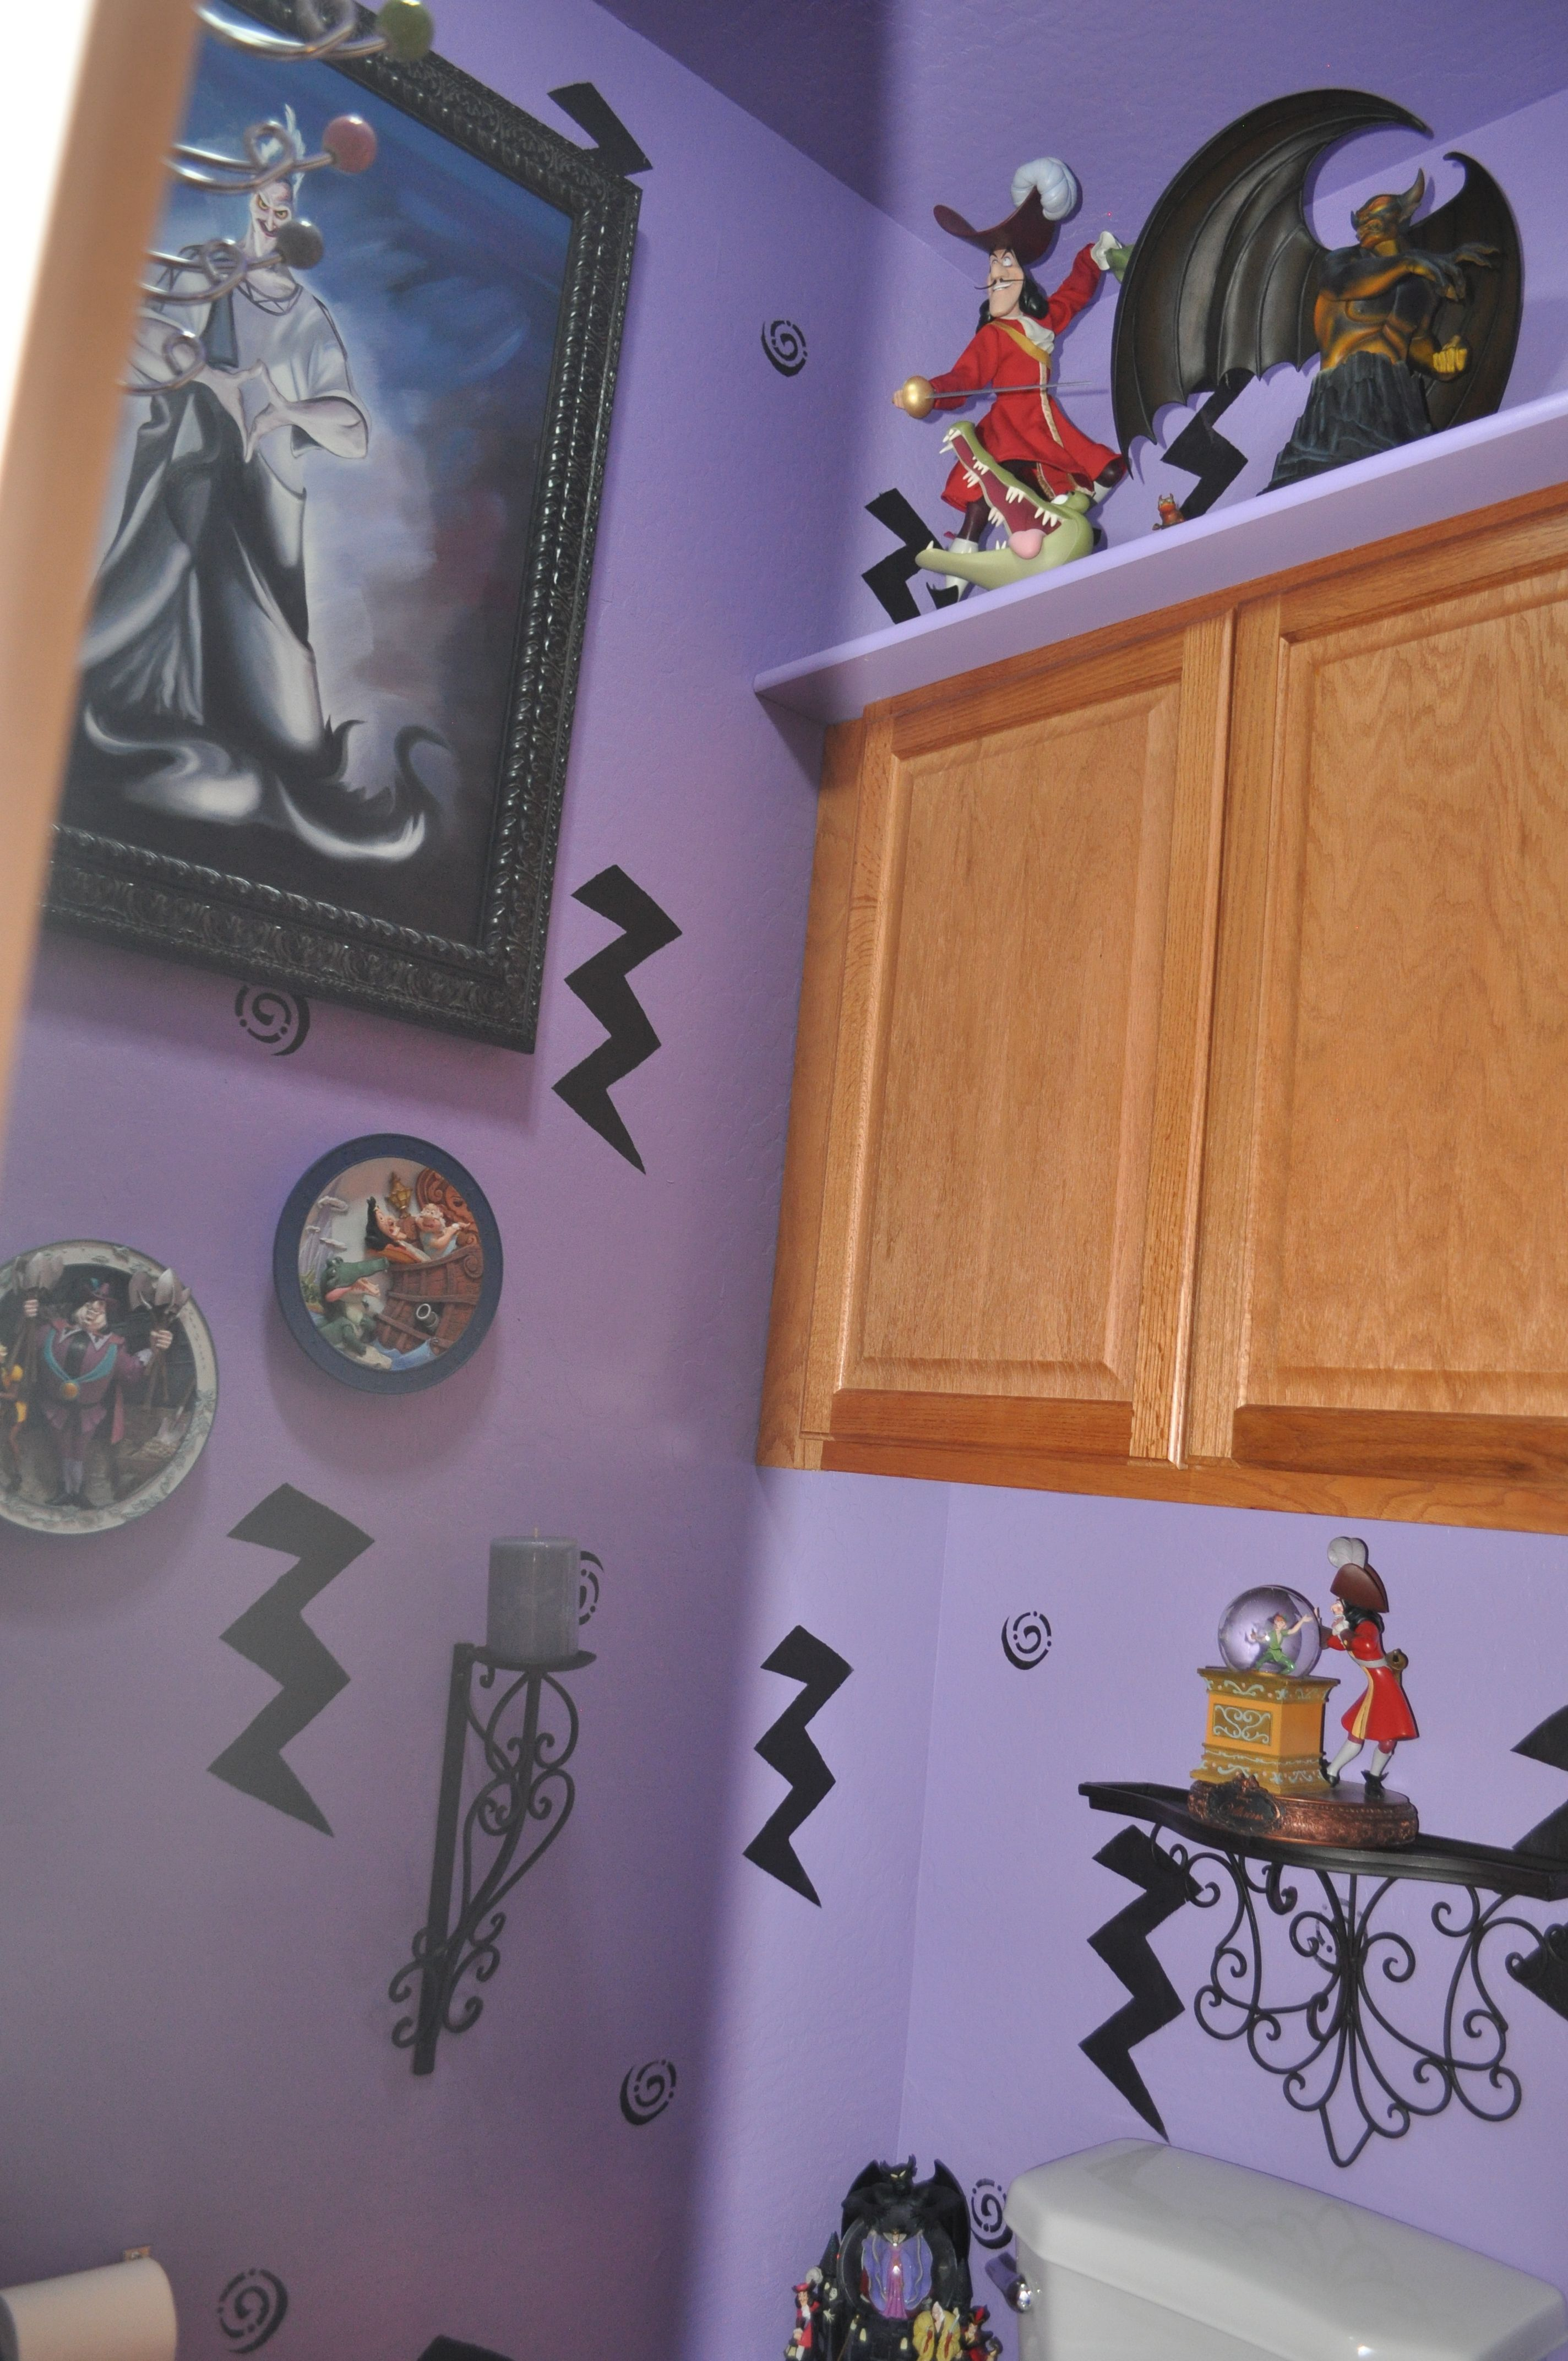 Disney Villains Bathroom Decorating Www Mydisneylove